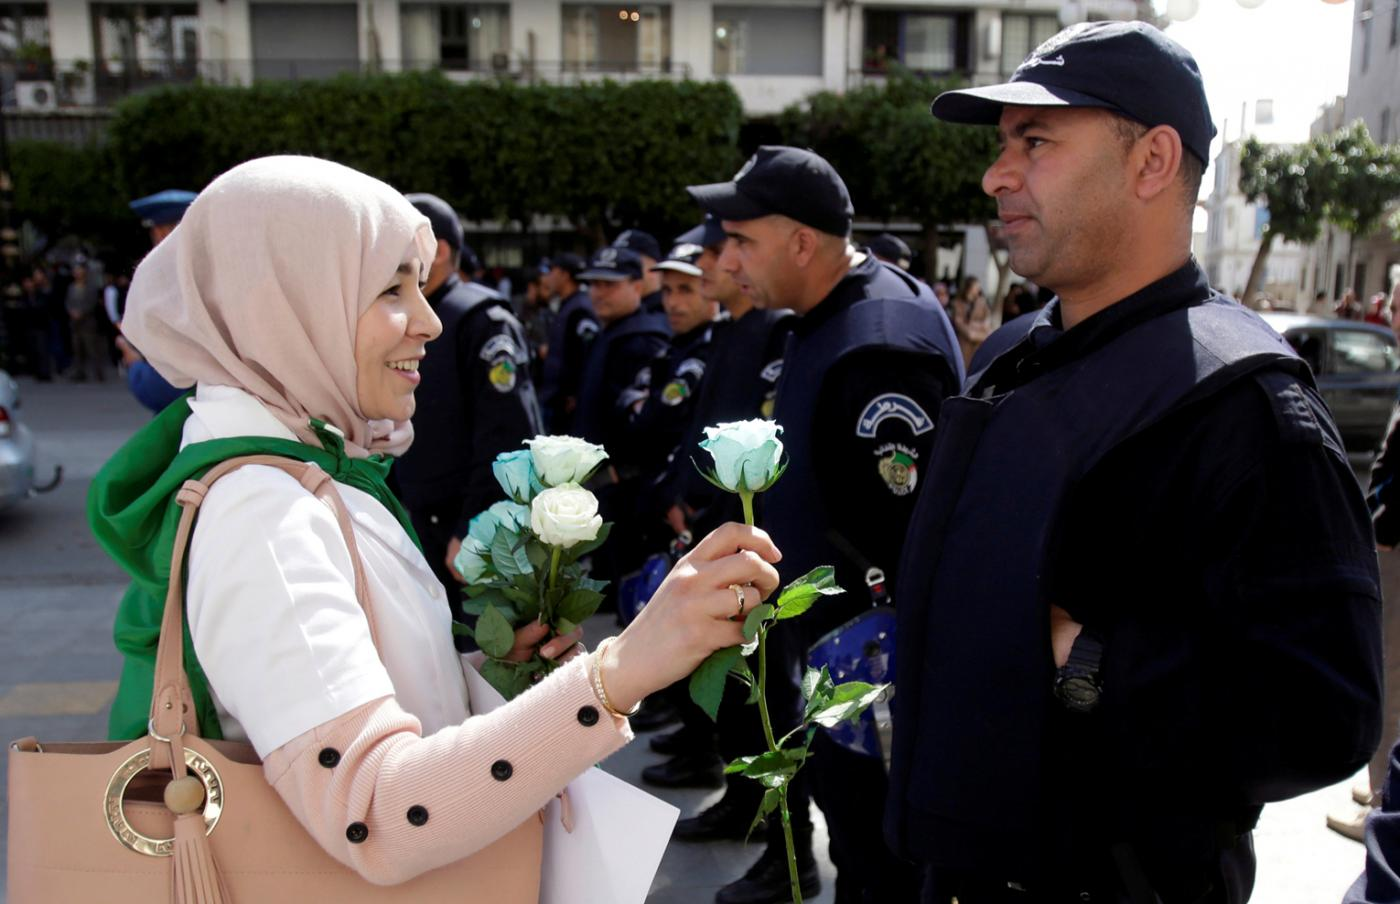 An Algerian protester offers roses to police during protests by teachers, lawyers and officials in several cities across the country on Wednesday, 13 March (Reuters)